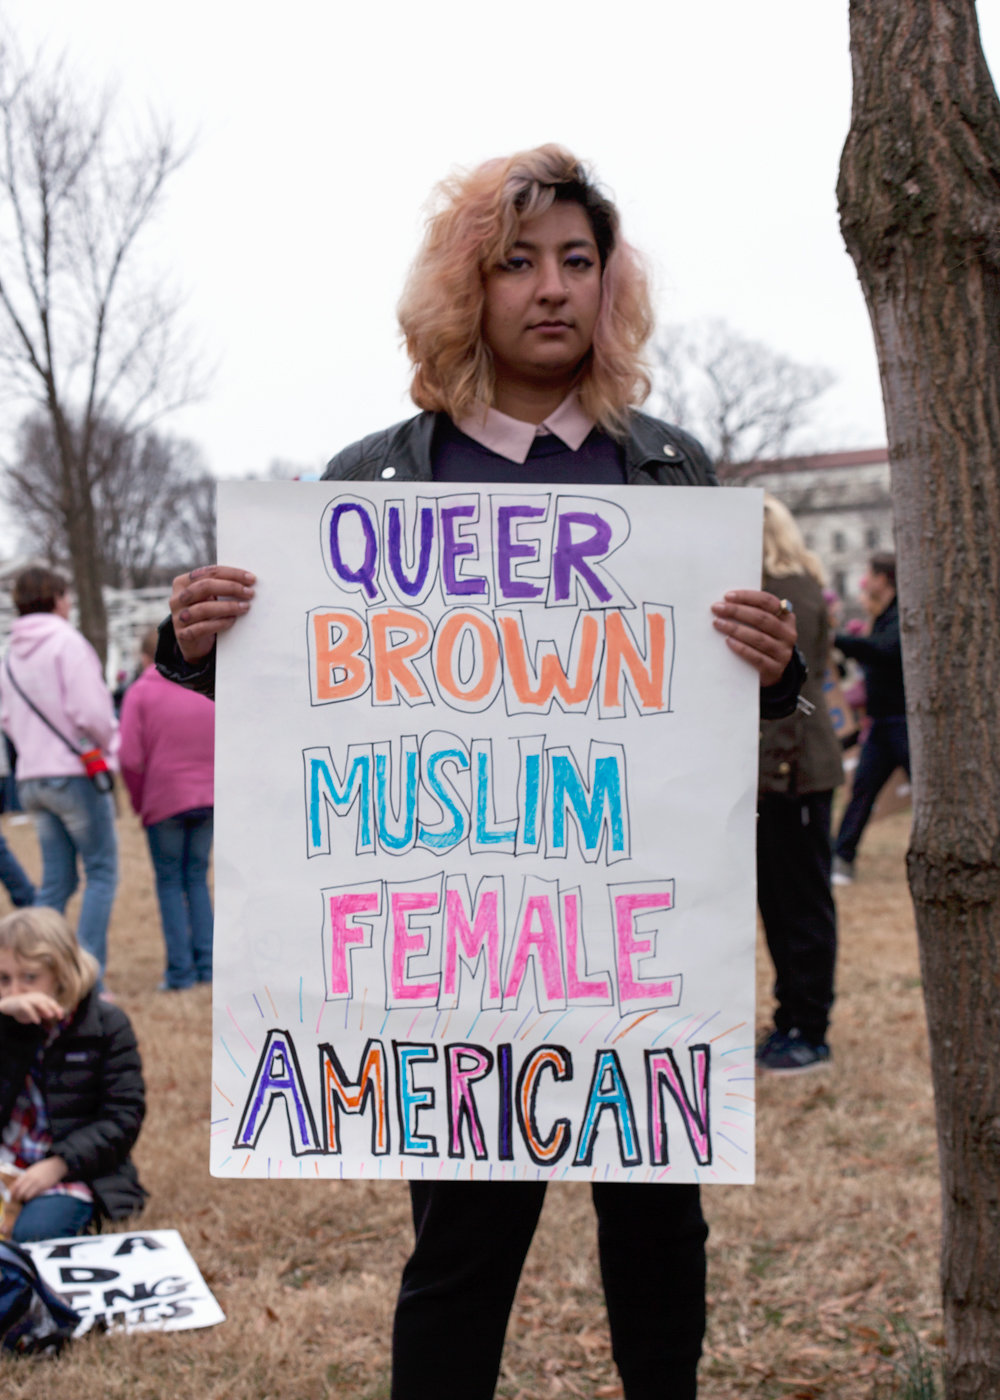 Women's March on Washington Zig Metzler - Queer Brown Muslim Female American